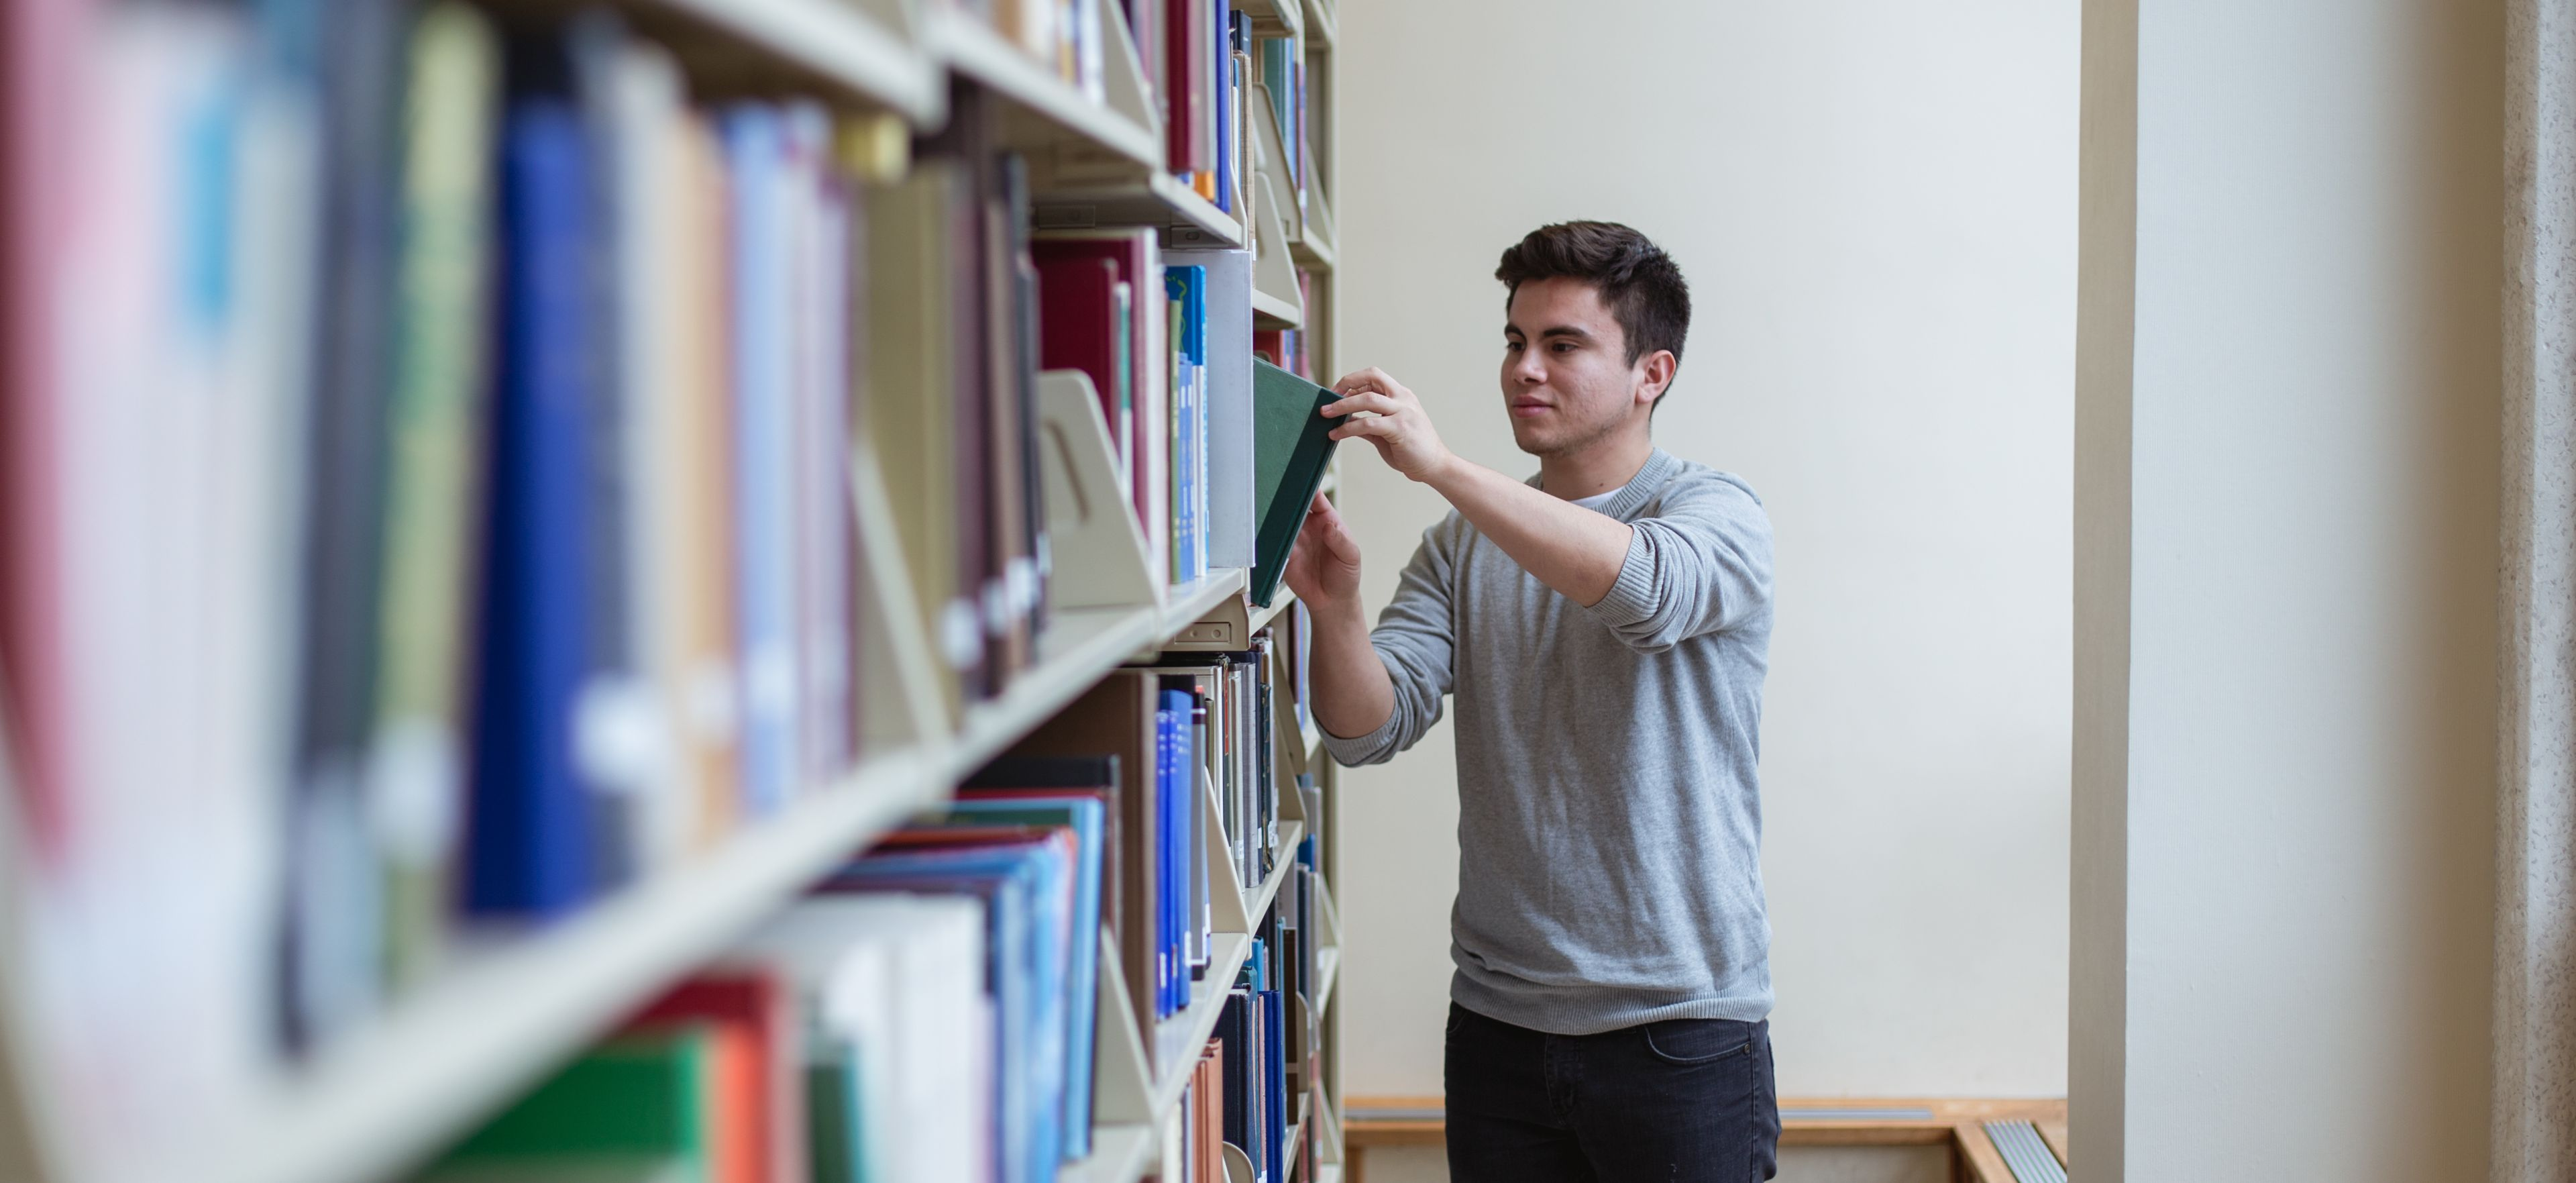 All AWR-designated courses will give you tools to succeed in a university classroom and beyond.